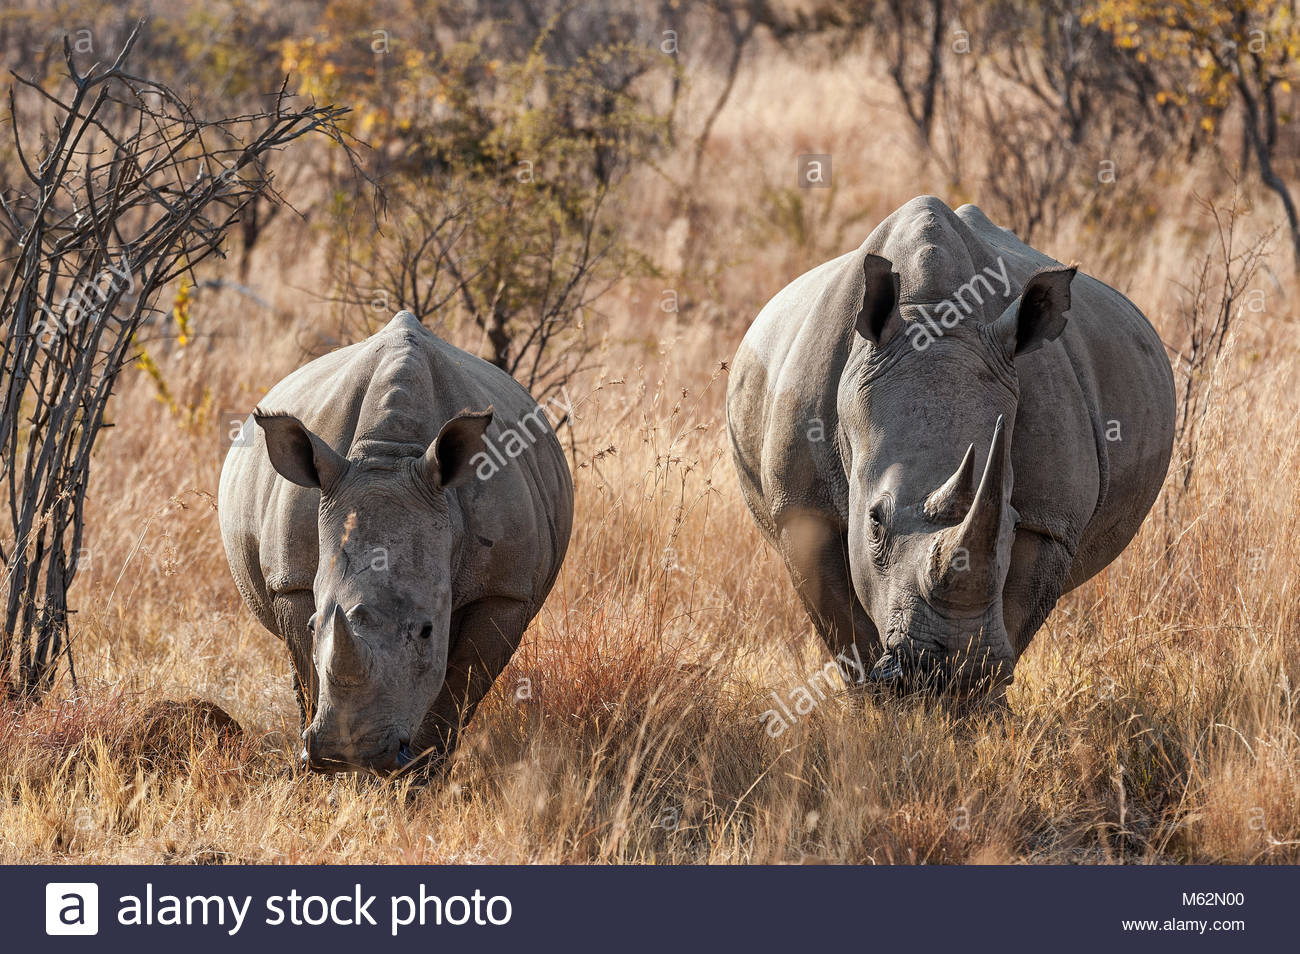 white rhinoceros or square-lipped rhinoceros, Ceratotherium simum in South Africa, Pilanesberg Nationalpark, protected - Stock Image